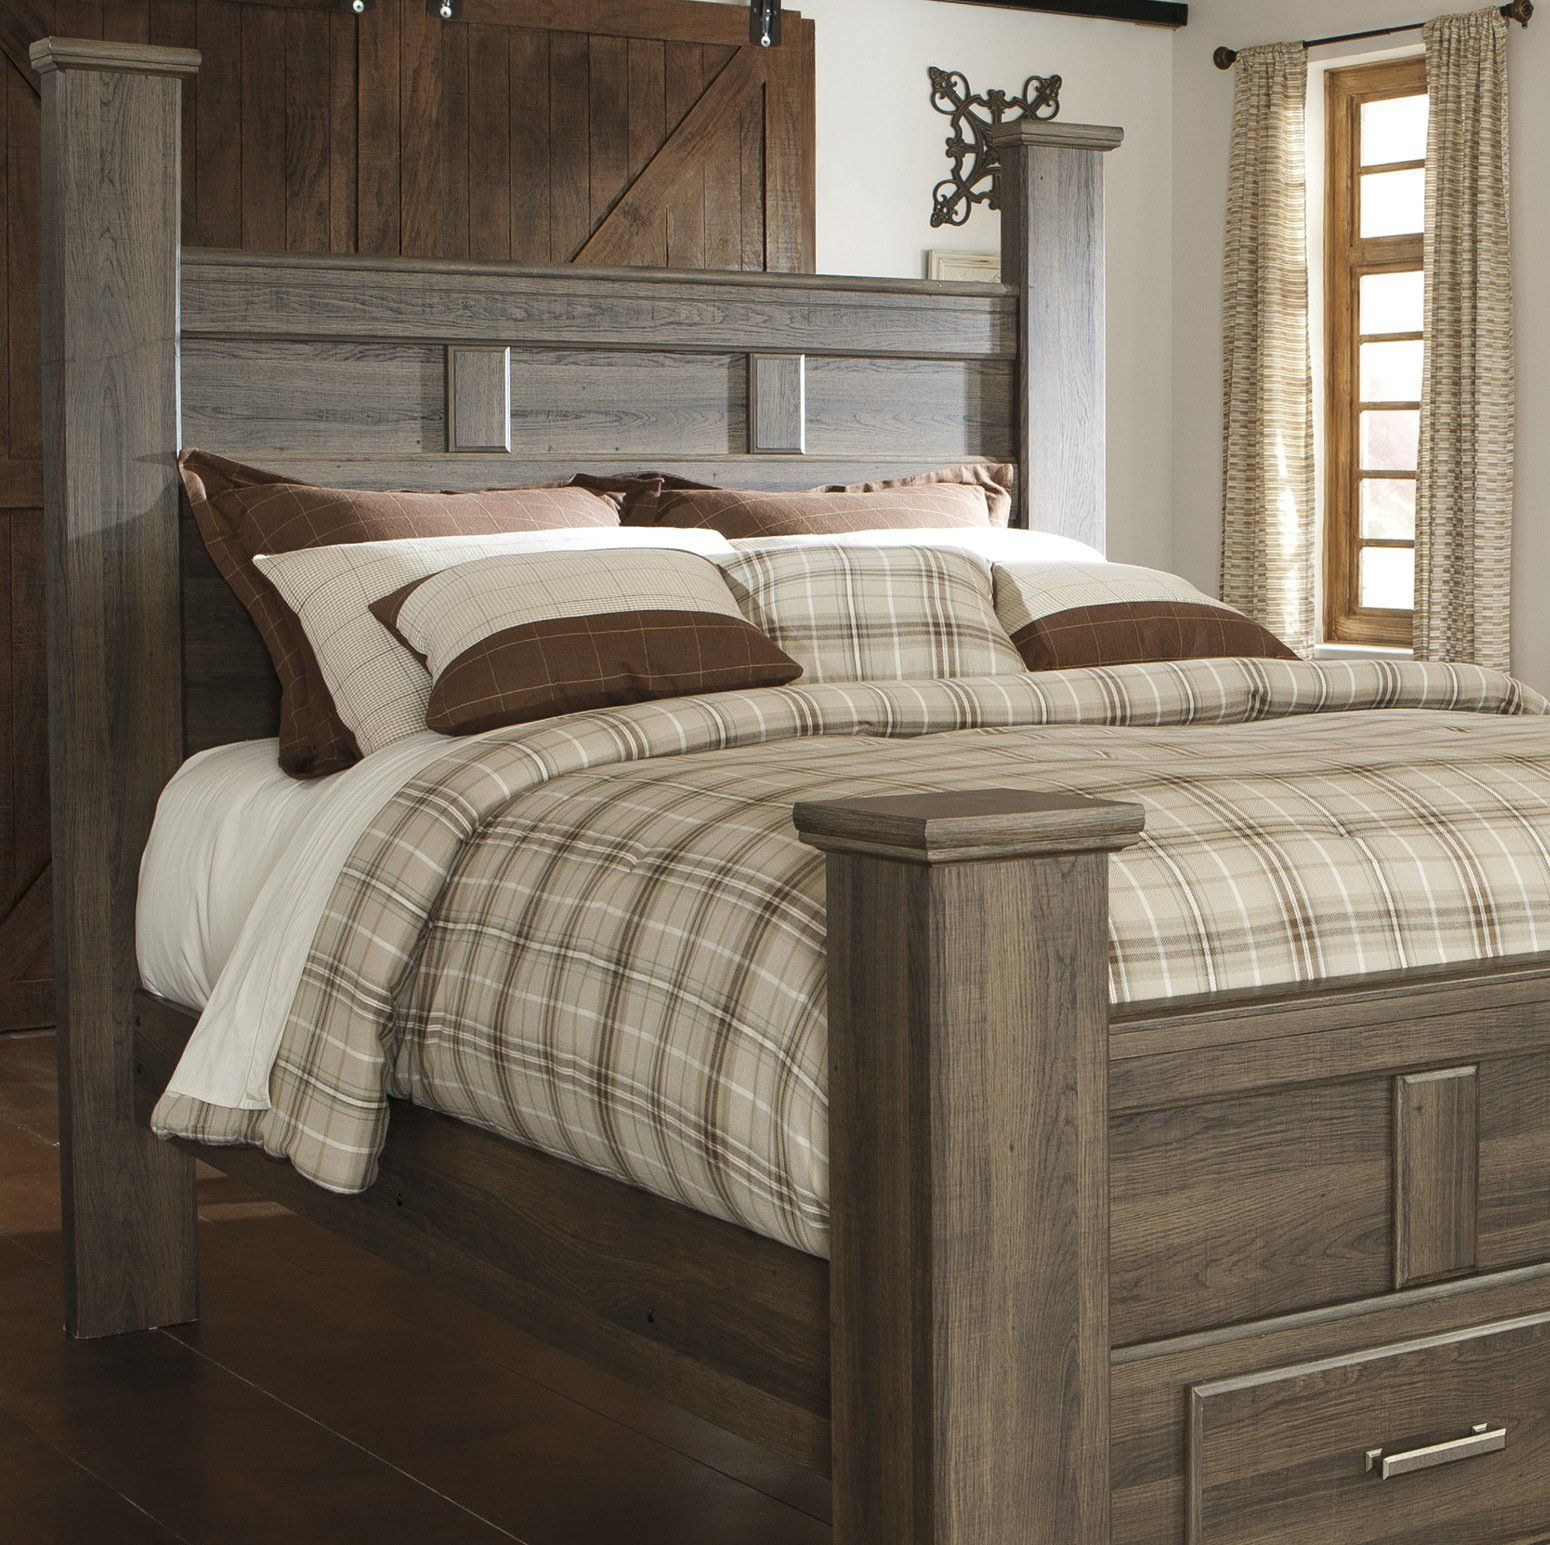 Juararoy Casual Dark Brown Color Replicated Roughsawn Oak Bed Room